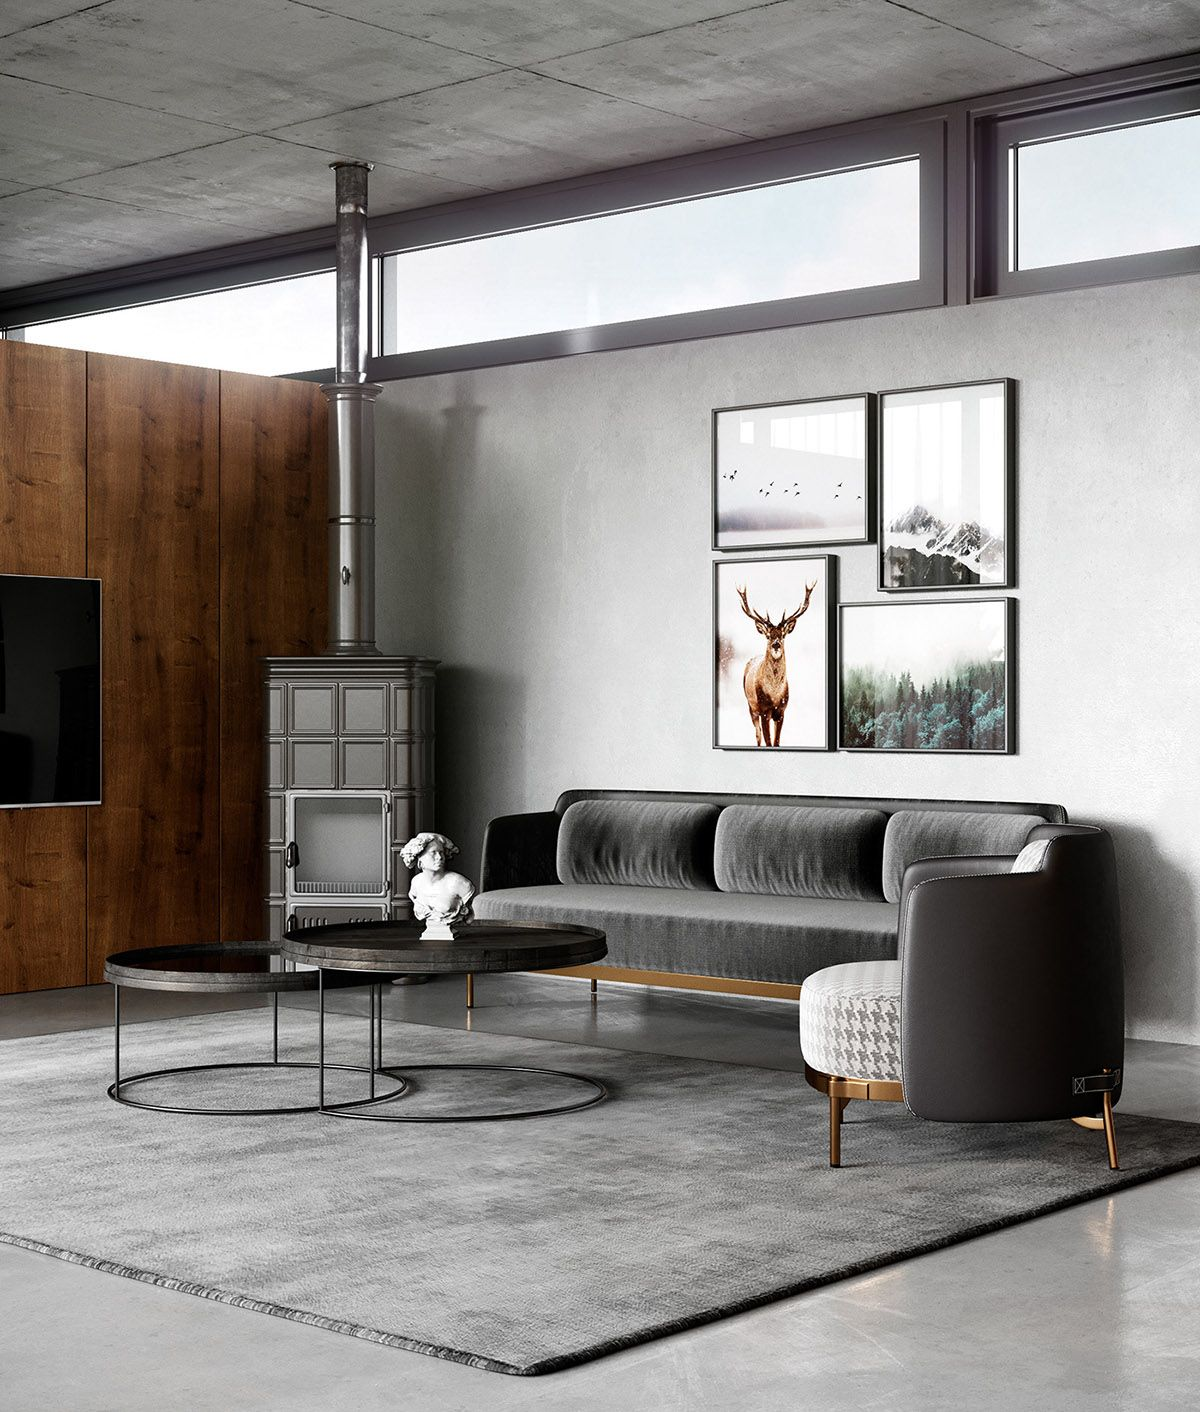 2 sophisticated industrial style homes living room ideas rh pinterest com